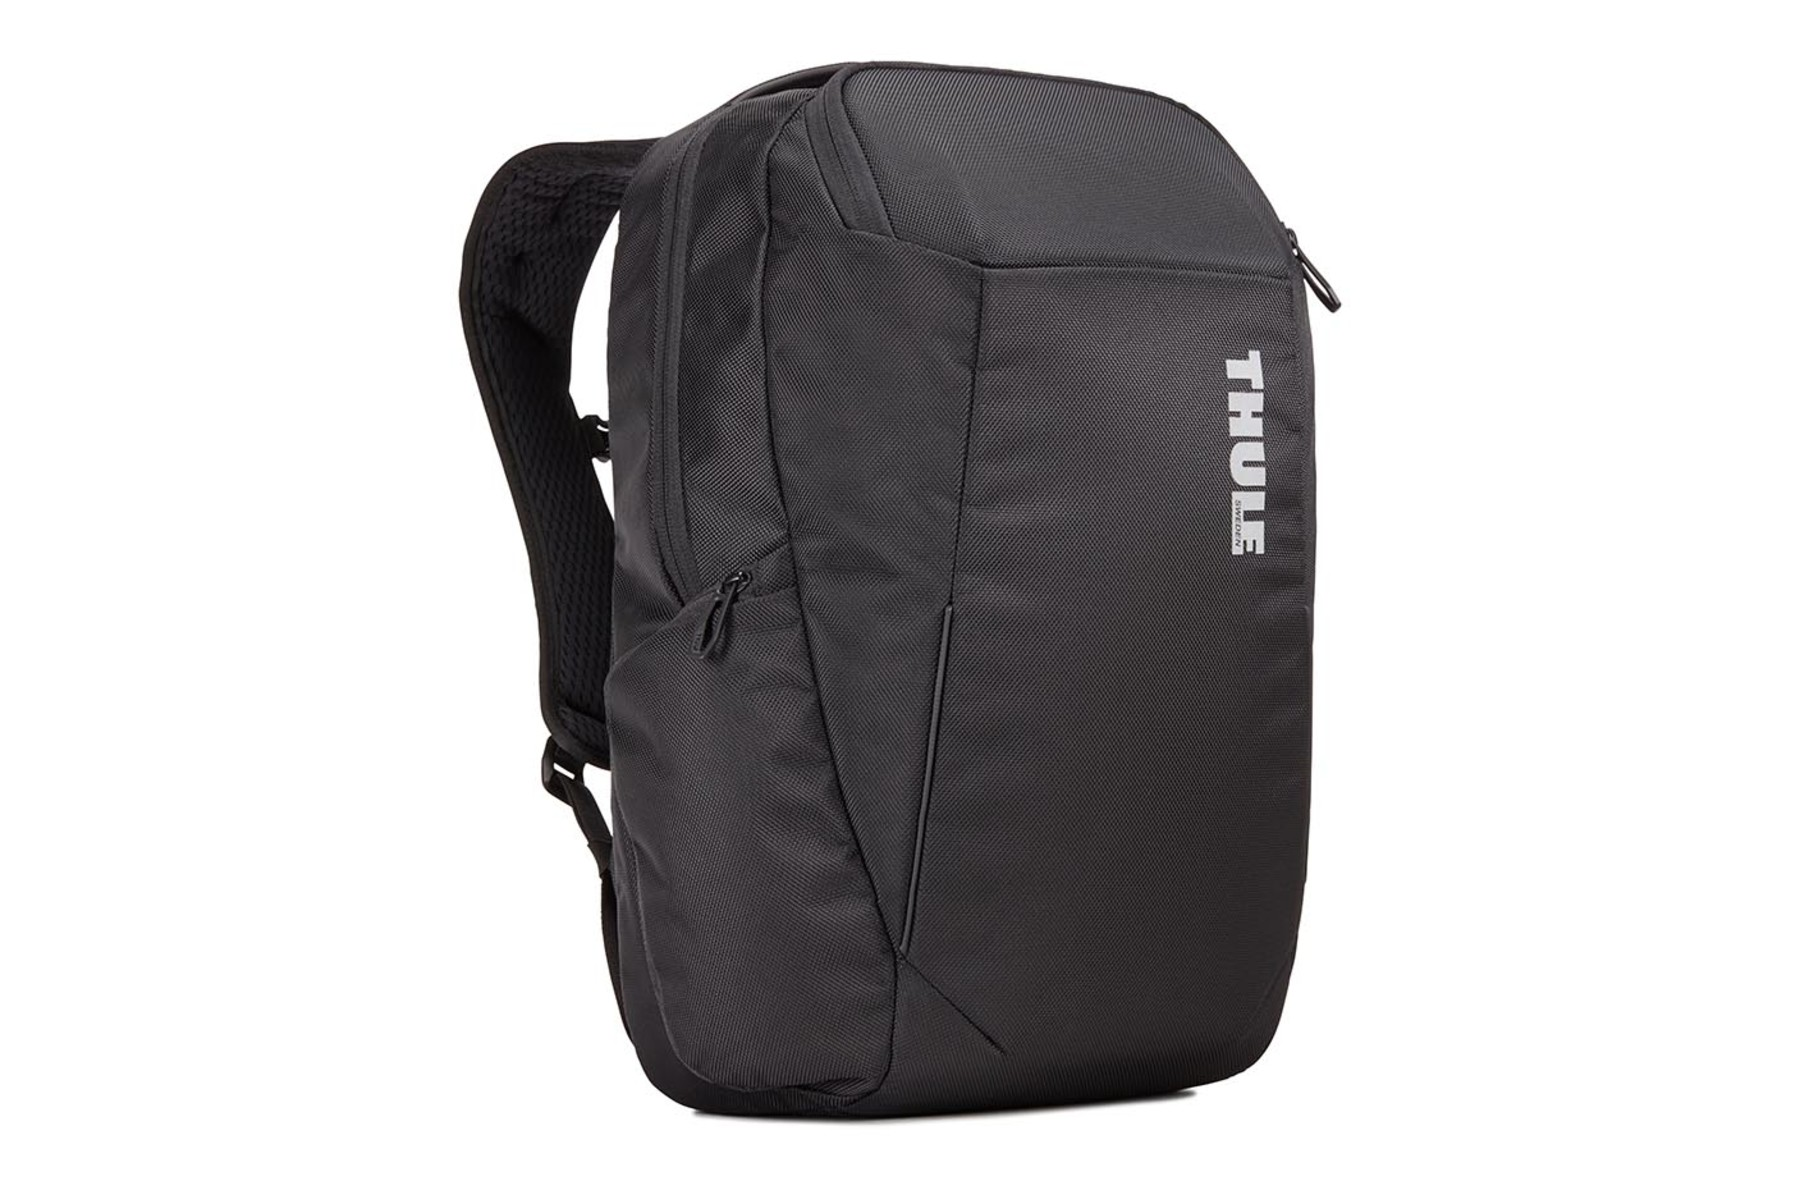 ce405f77e6 Thule Accent Backpack 23L